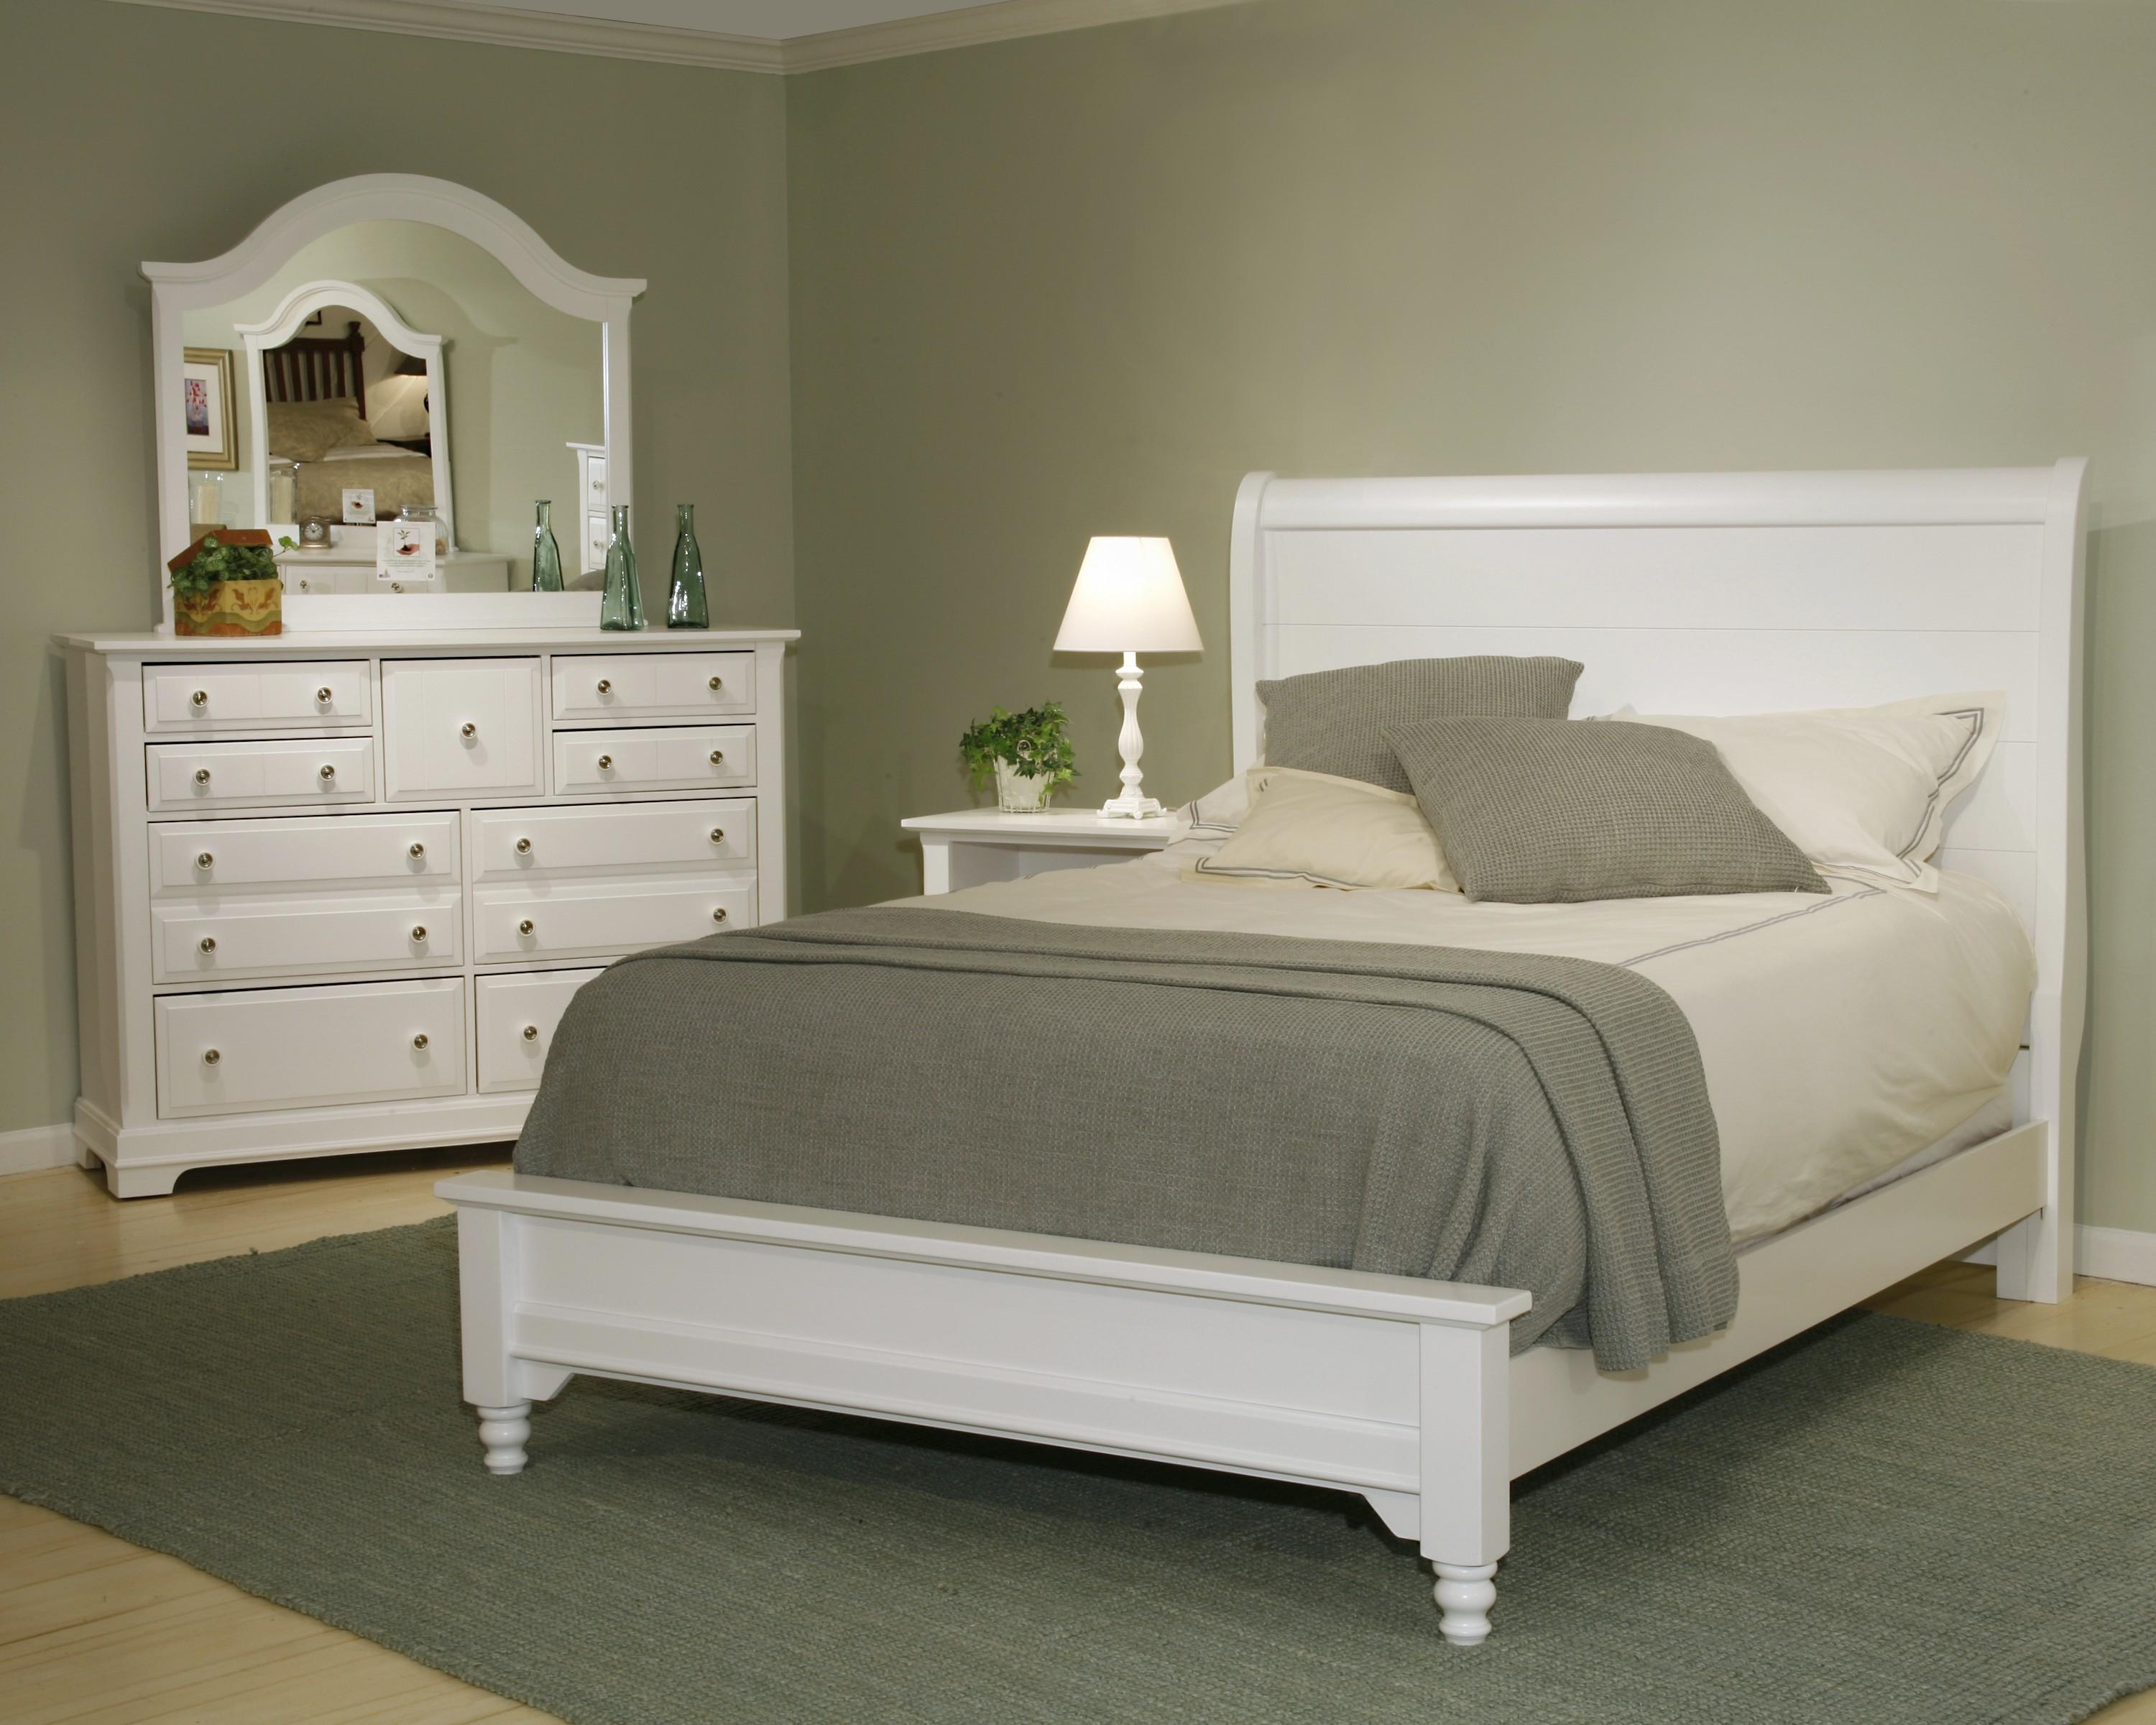 Vaughan Bassett Cottage Full Bedroom Group - Item Number: BB24 F Bedroom Group 1